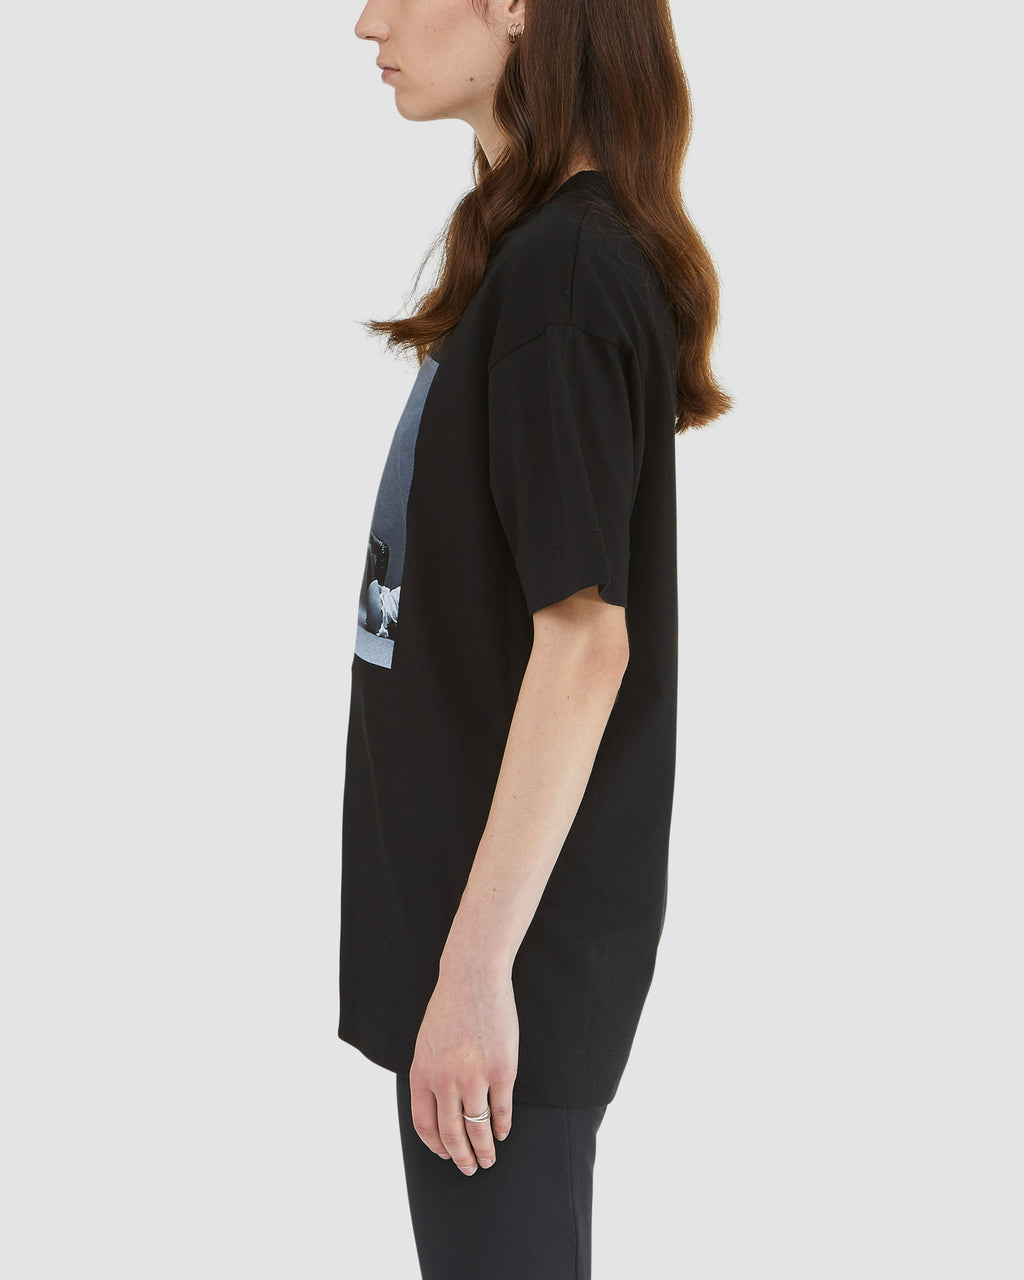 SCOUT AND TALLULAH S/S TEE